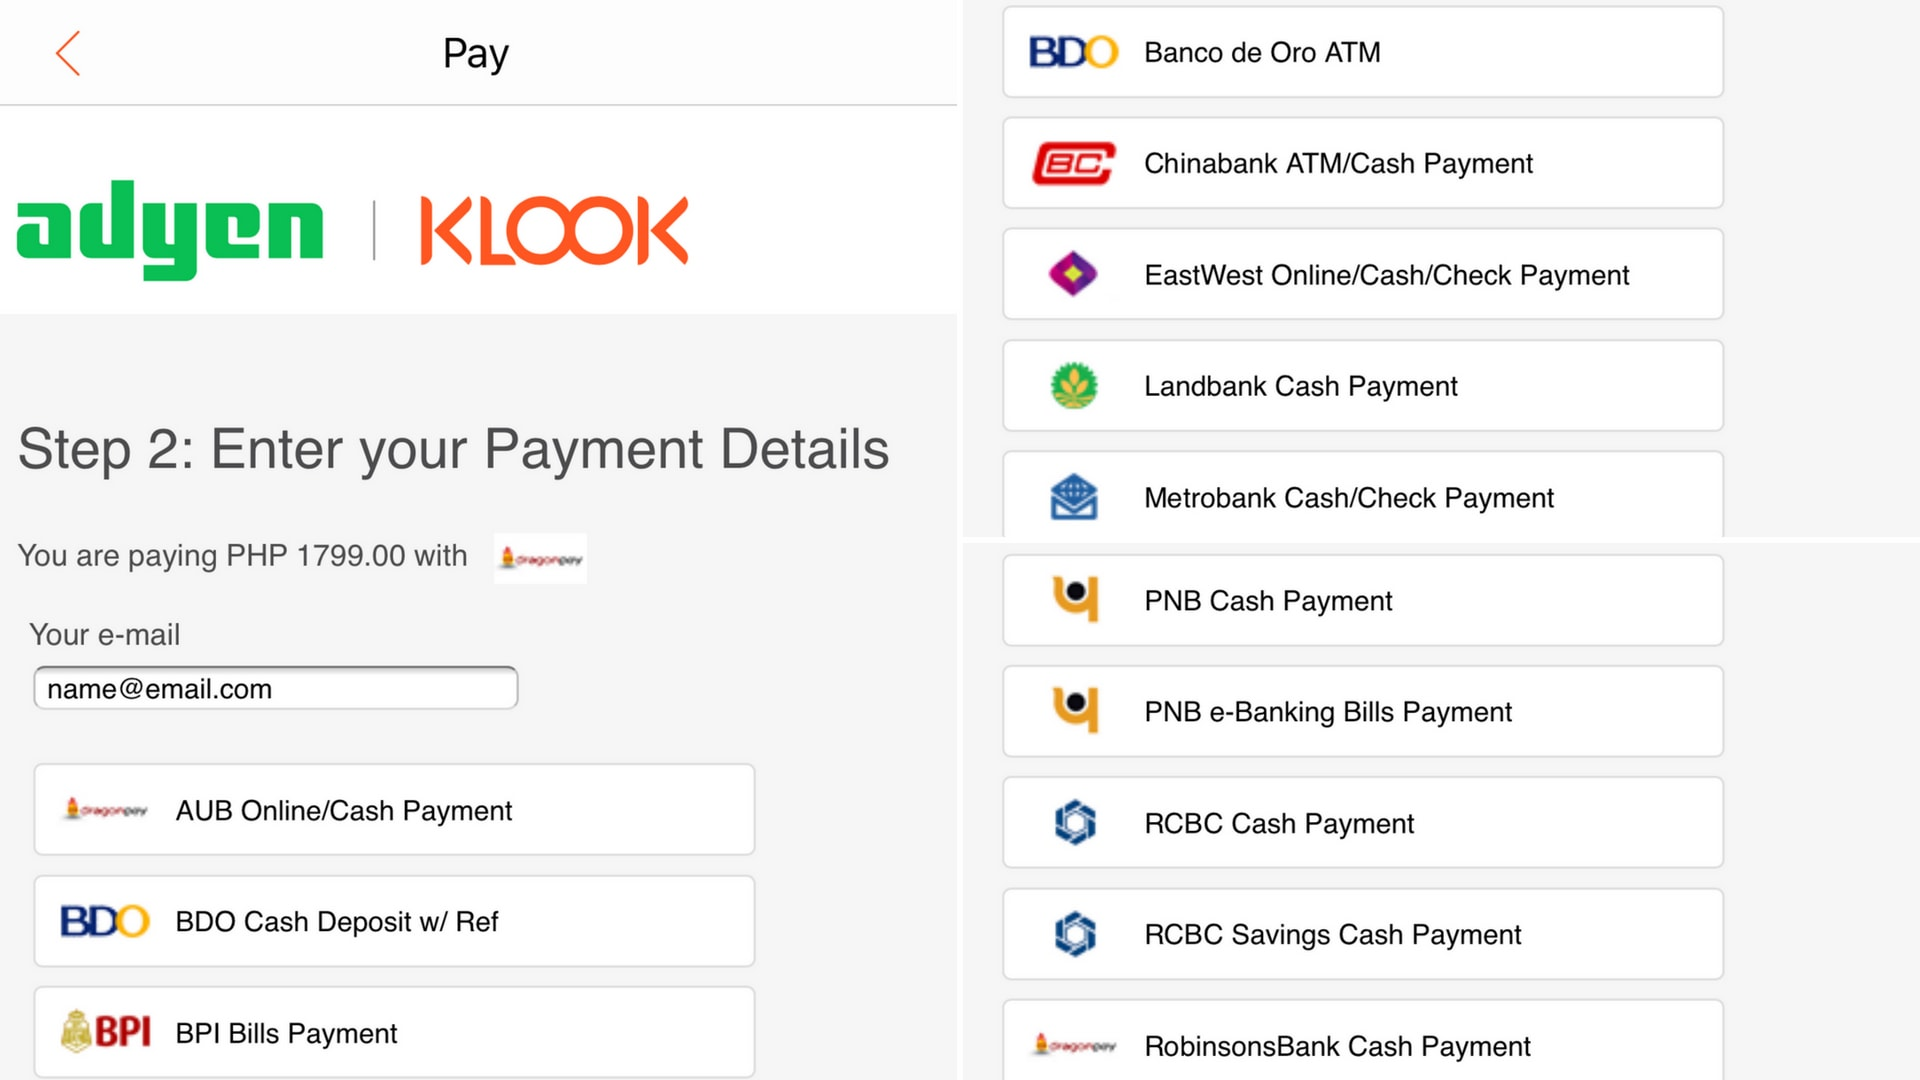 No Credit Card? No Problem! Book Your Klook Activities with